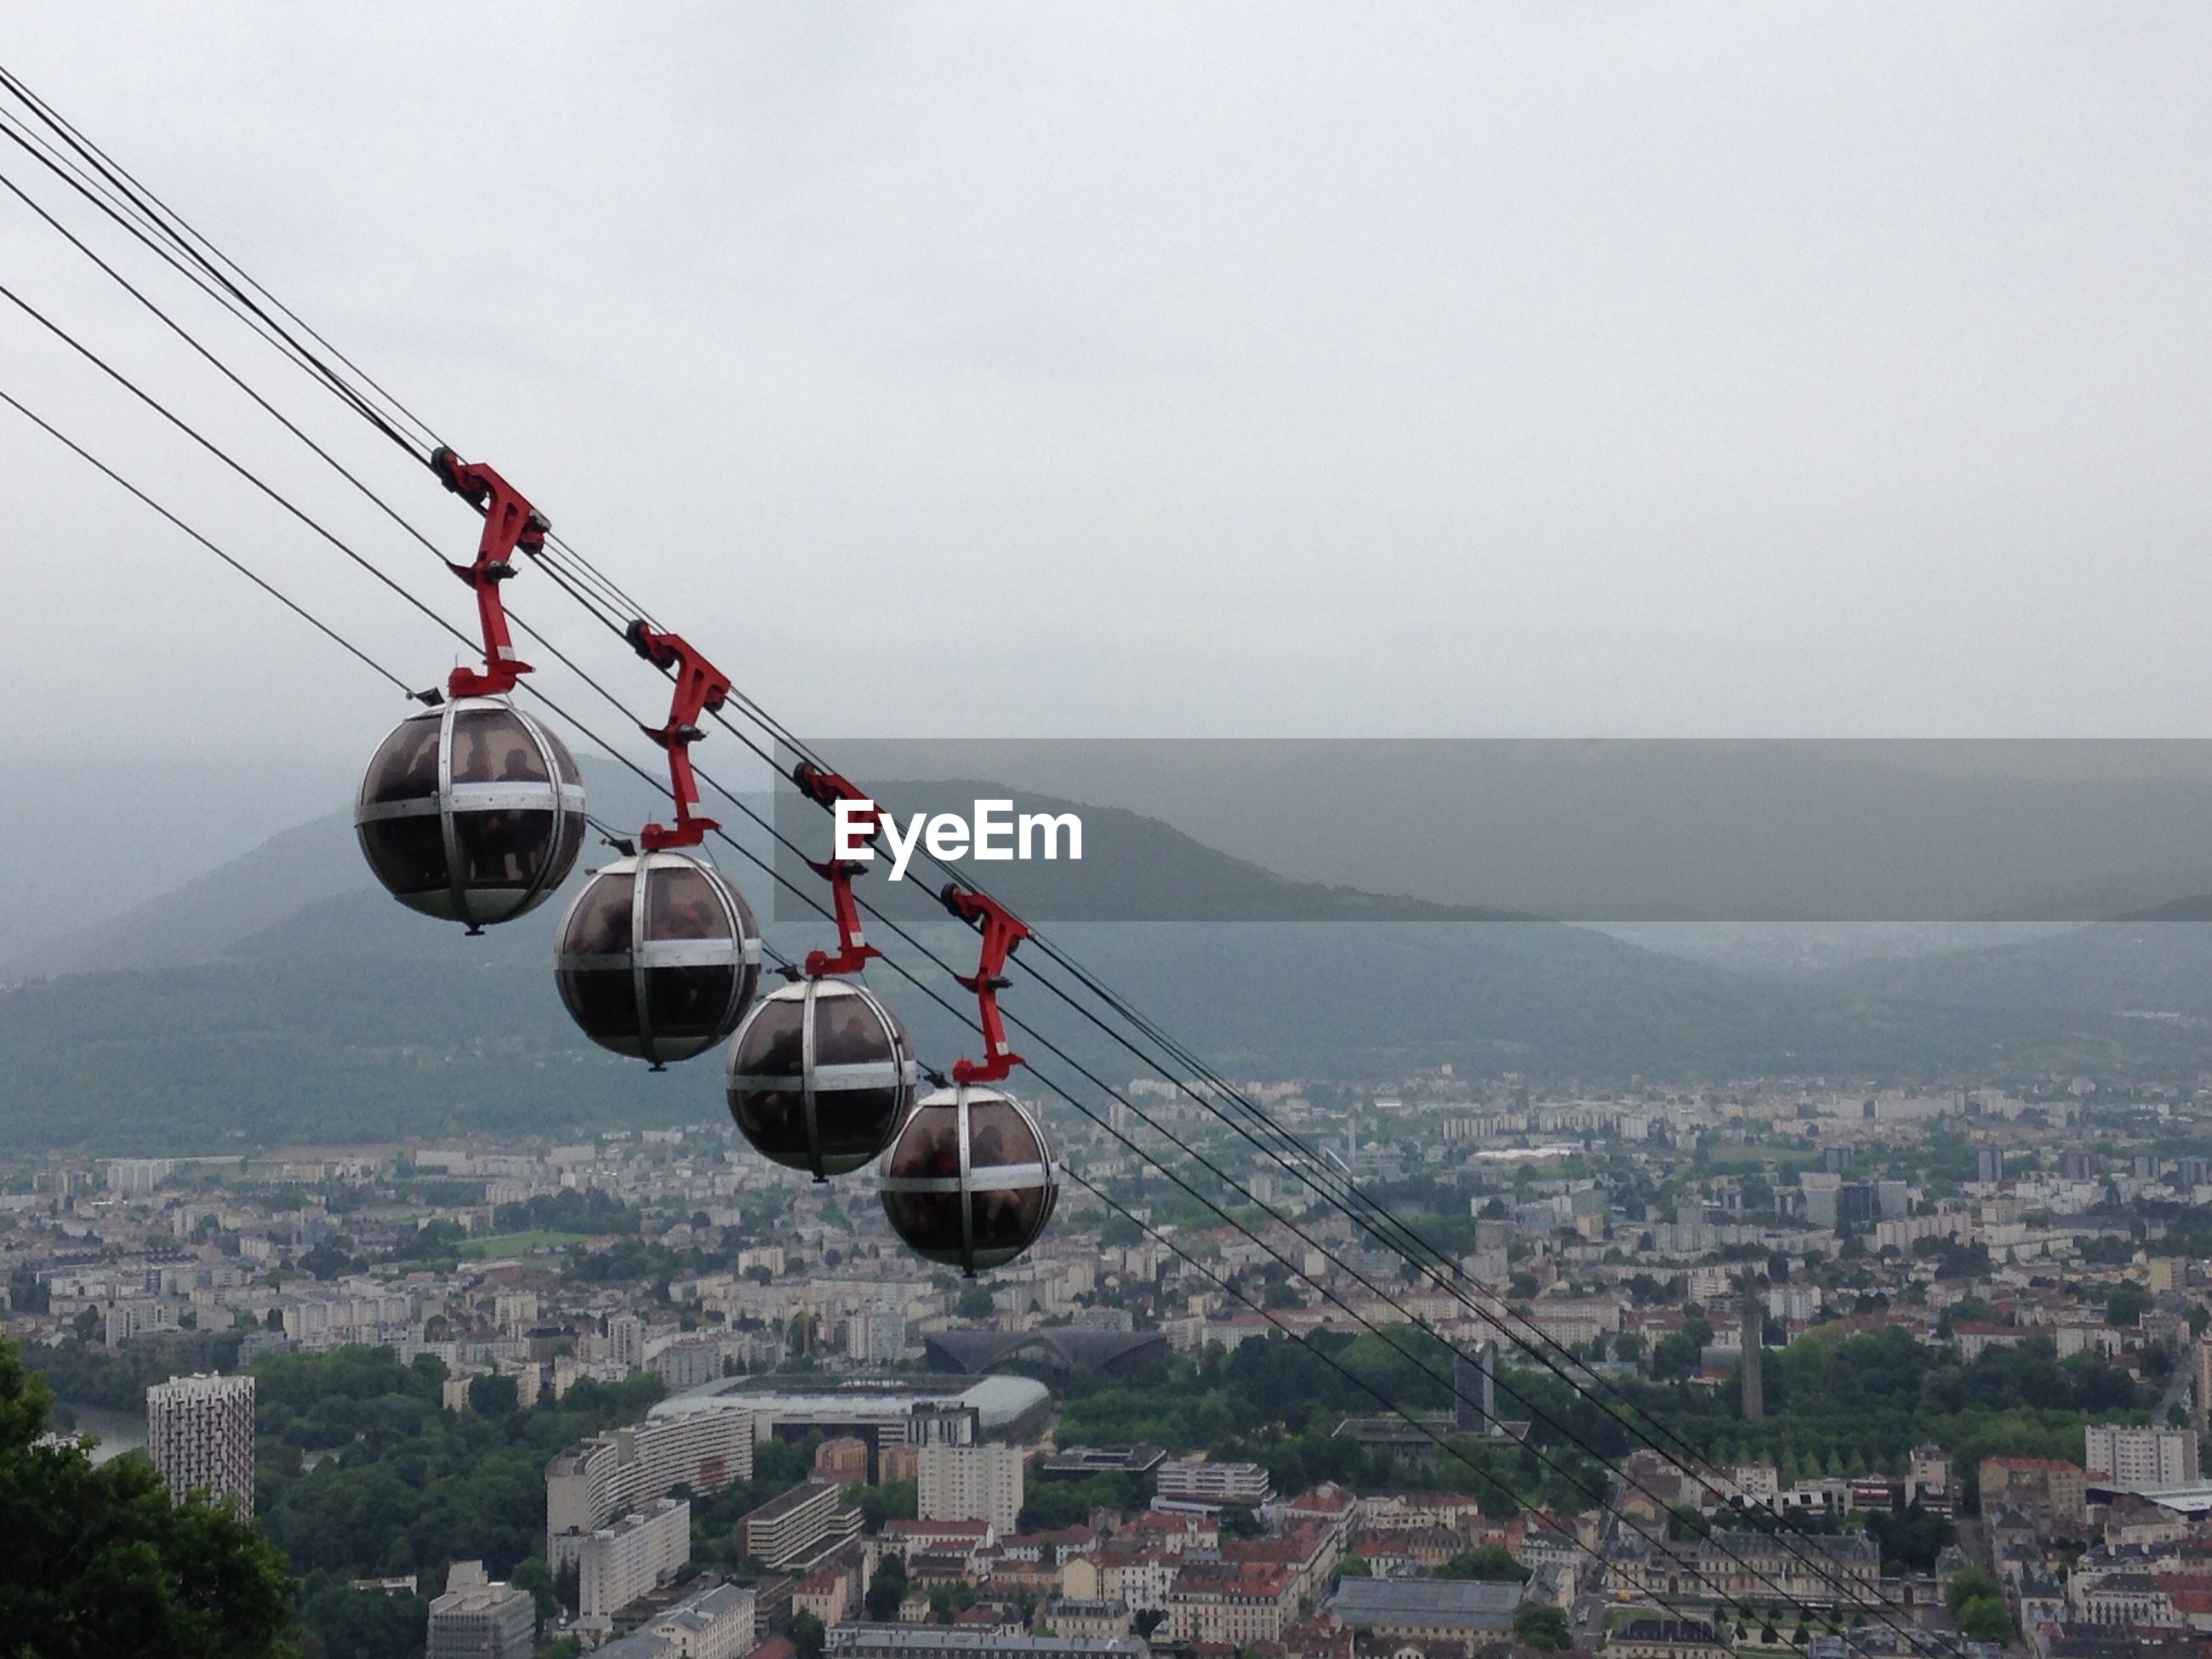 View of overhead cable cars in city against sky